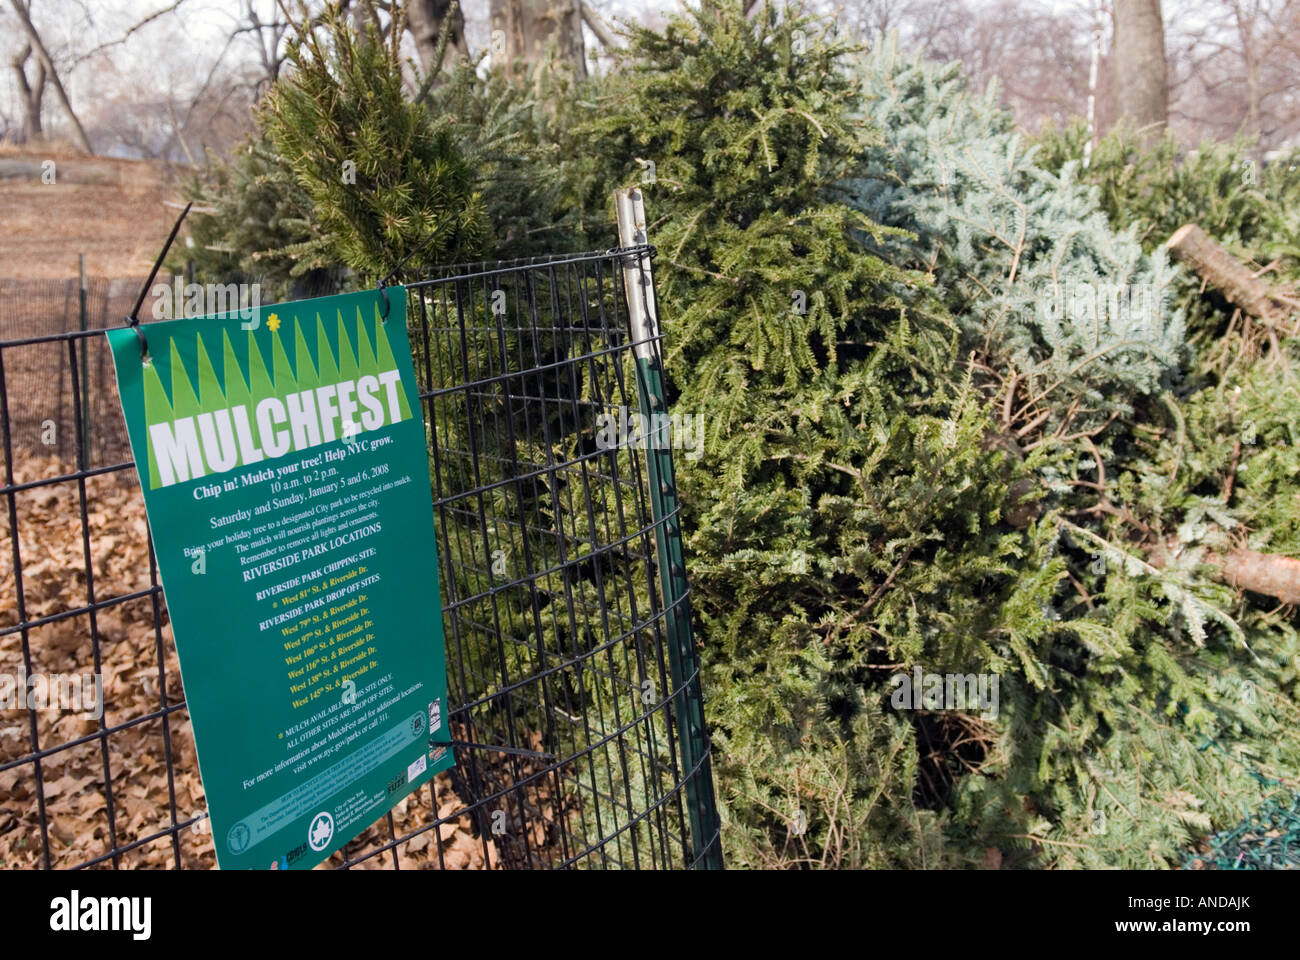 Christmas Tree Recycle Stock Photos & Christmas Tree Recycle Stock ...